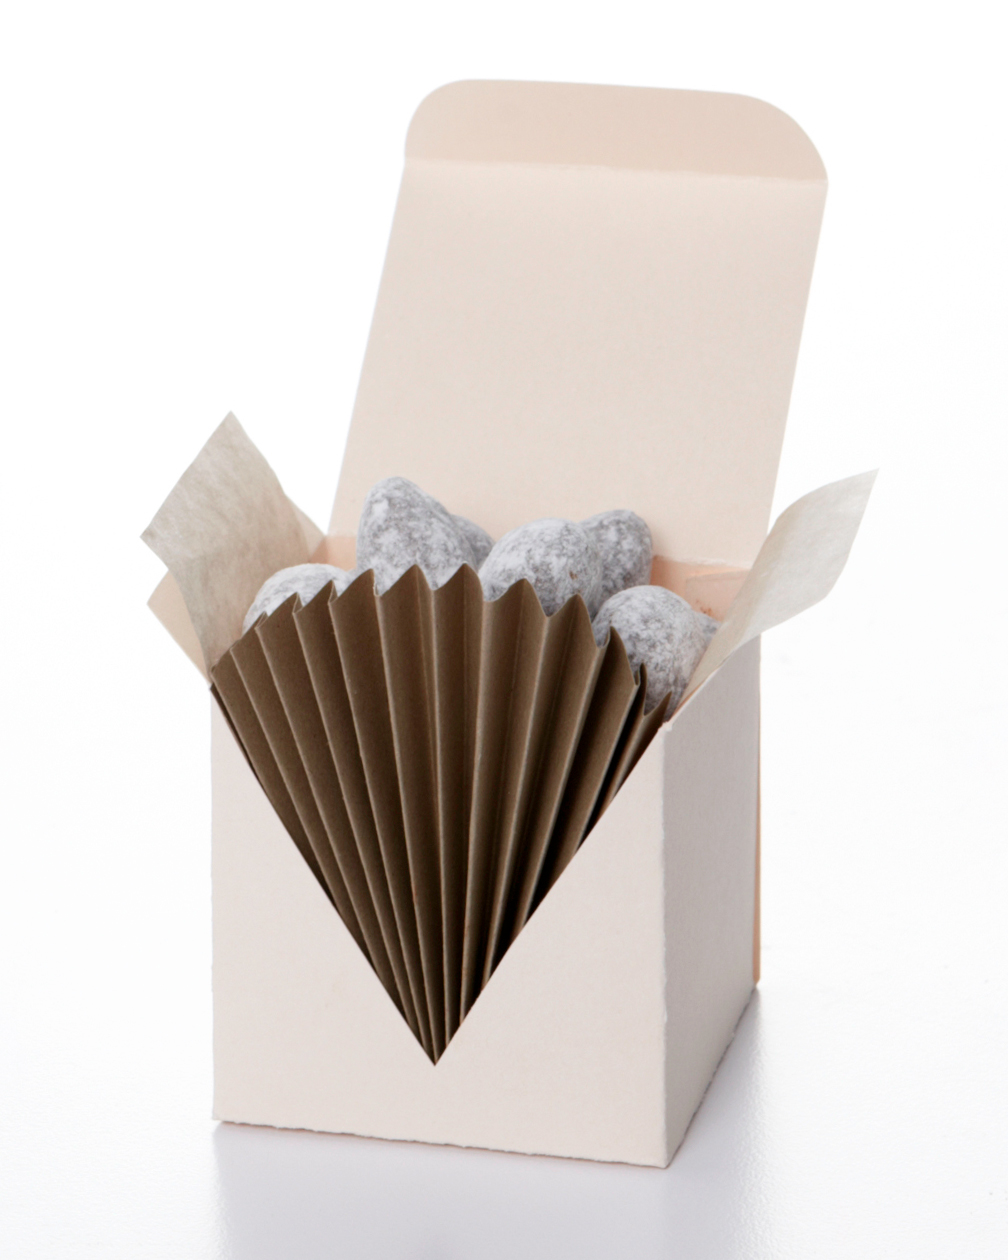 folded-favors-031-wd110073.jpg